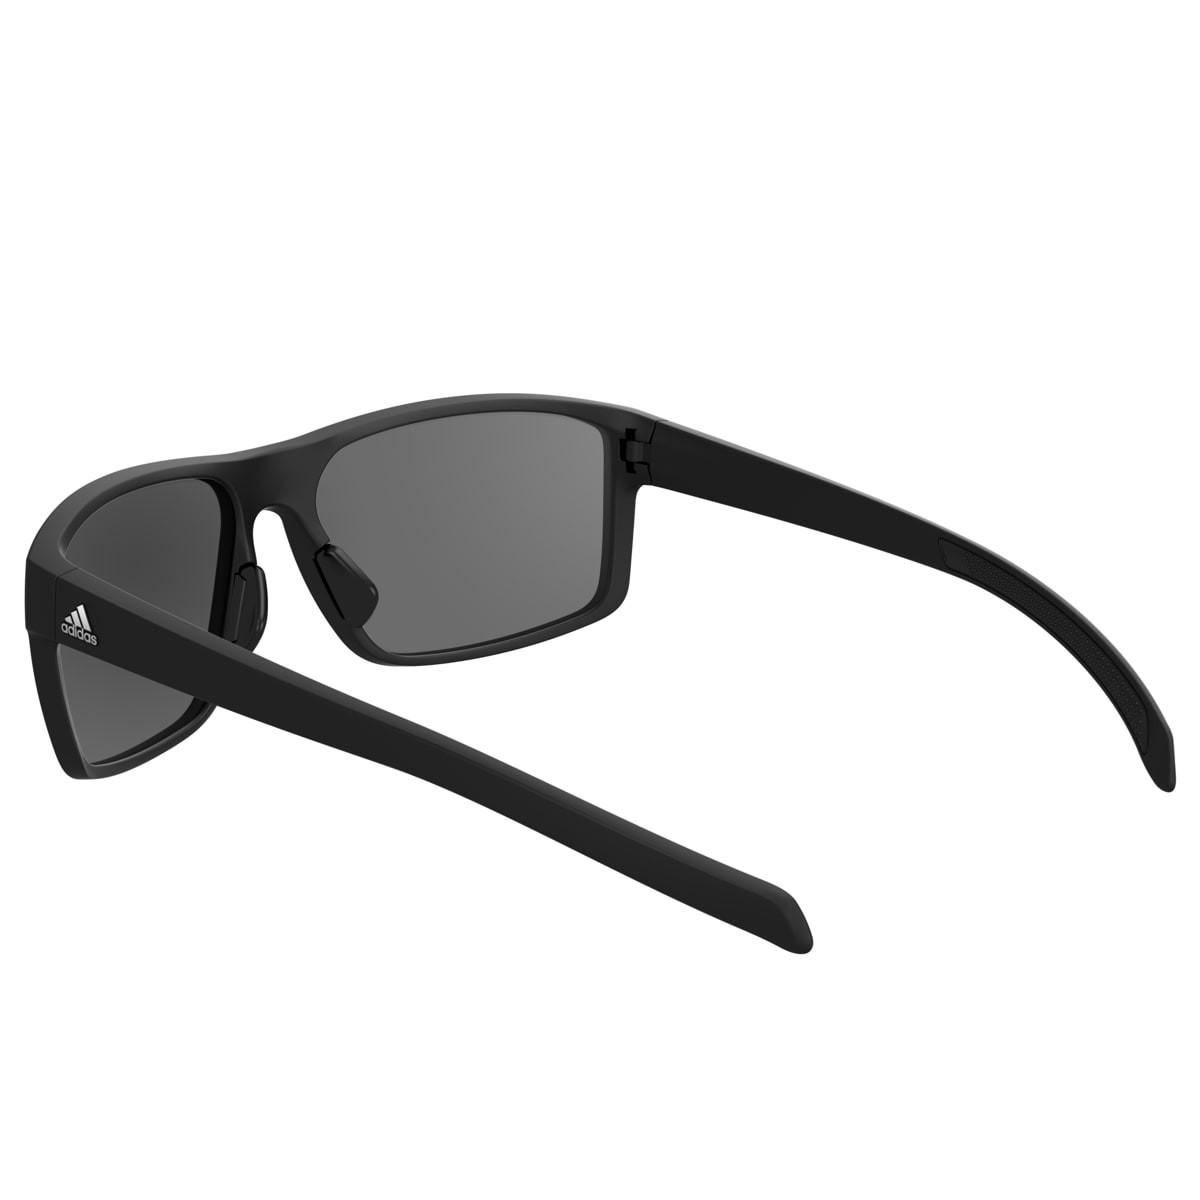 Adidas Eyewear Whipstart Black Matt Red Unisex